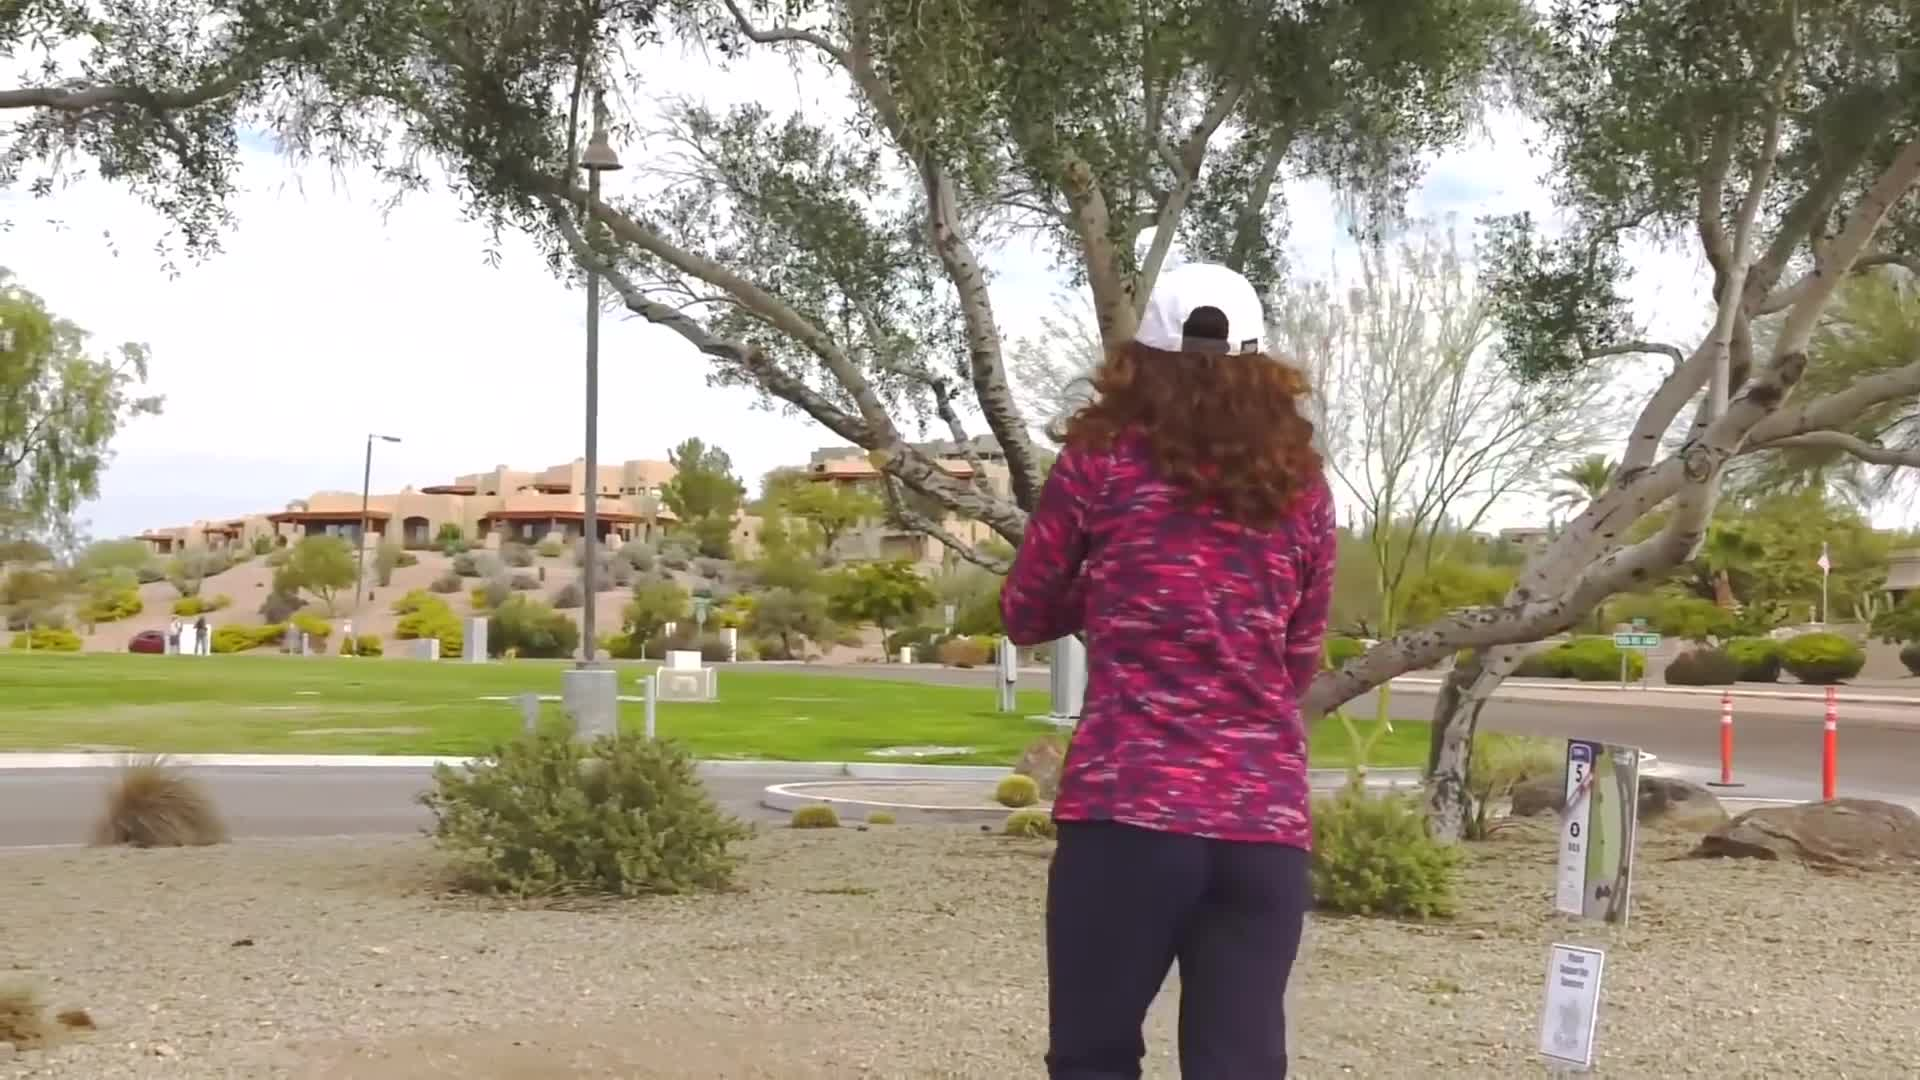 dgpt, disc golf, disc golf pro tour, sports, Round Two 2019 Memorial Championship - Jessica Weese hole 5 putt GIFs